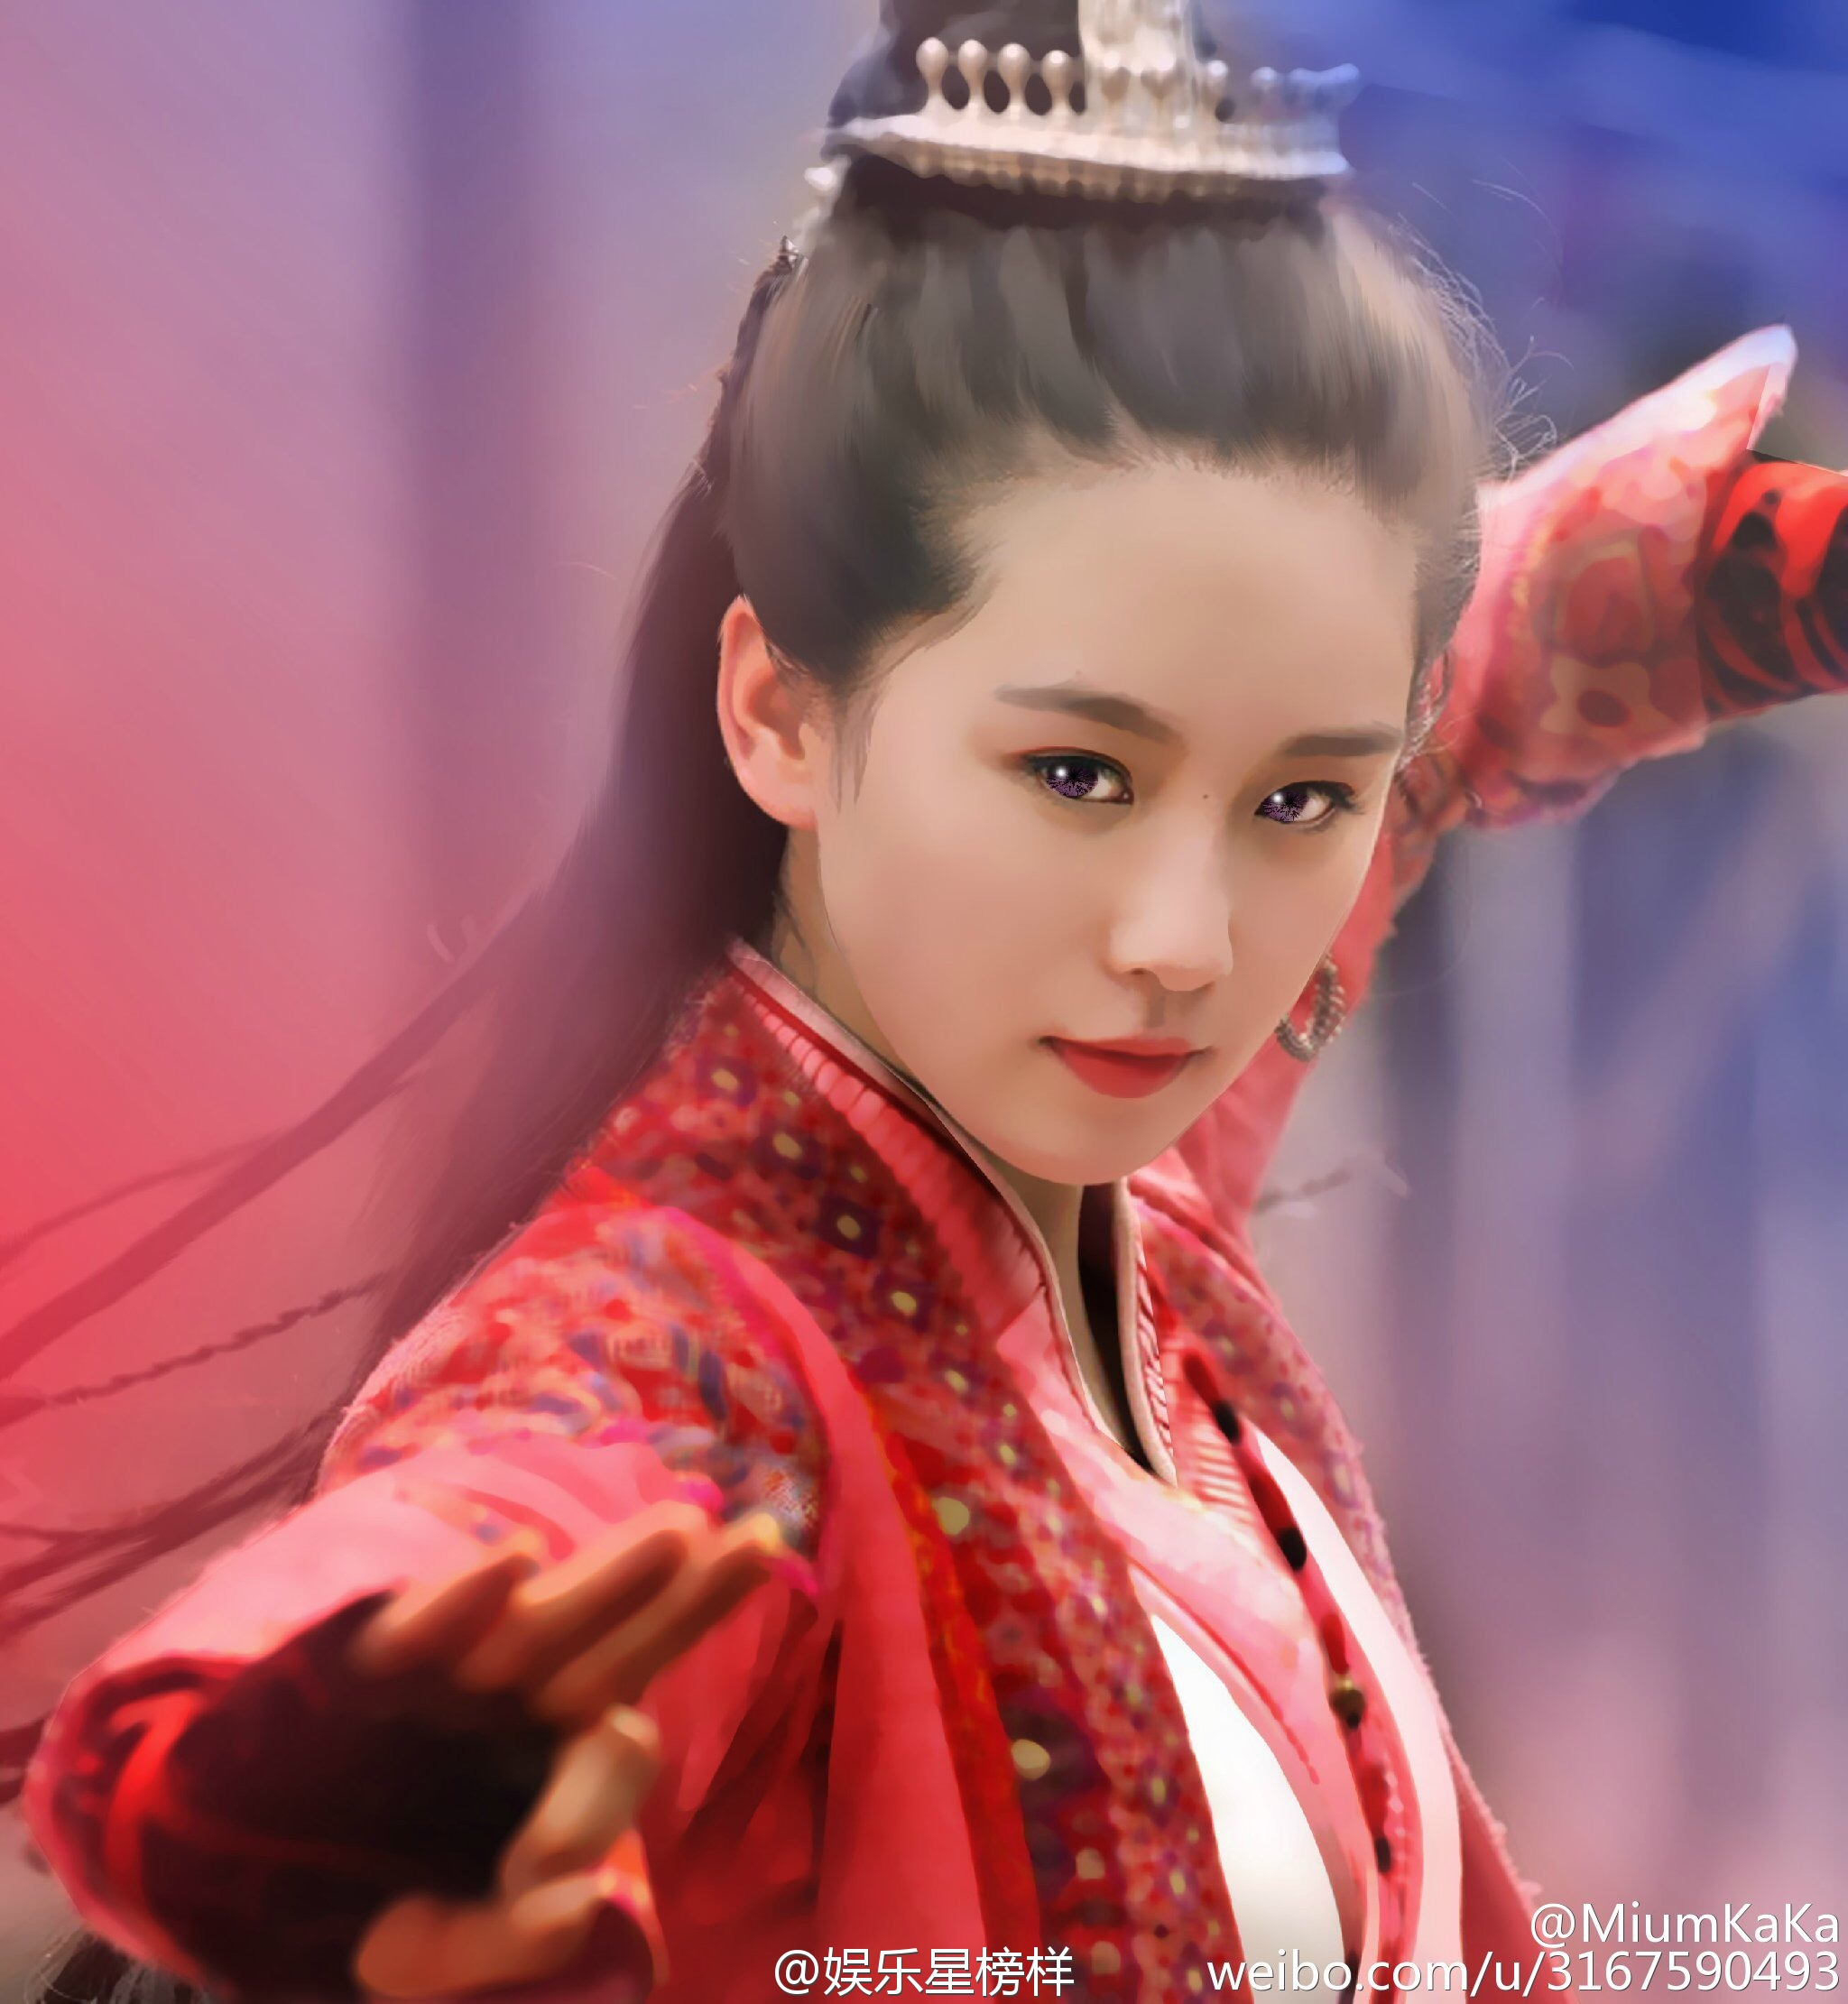 ... Red Dress, Hair Ornament, Dress, Red Outfit, Traditional Clothes, Red